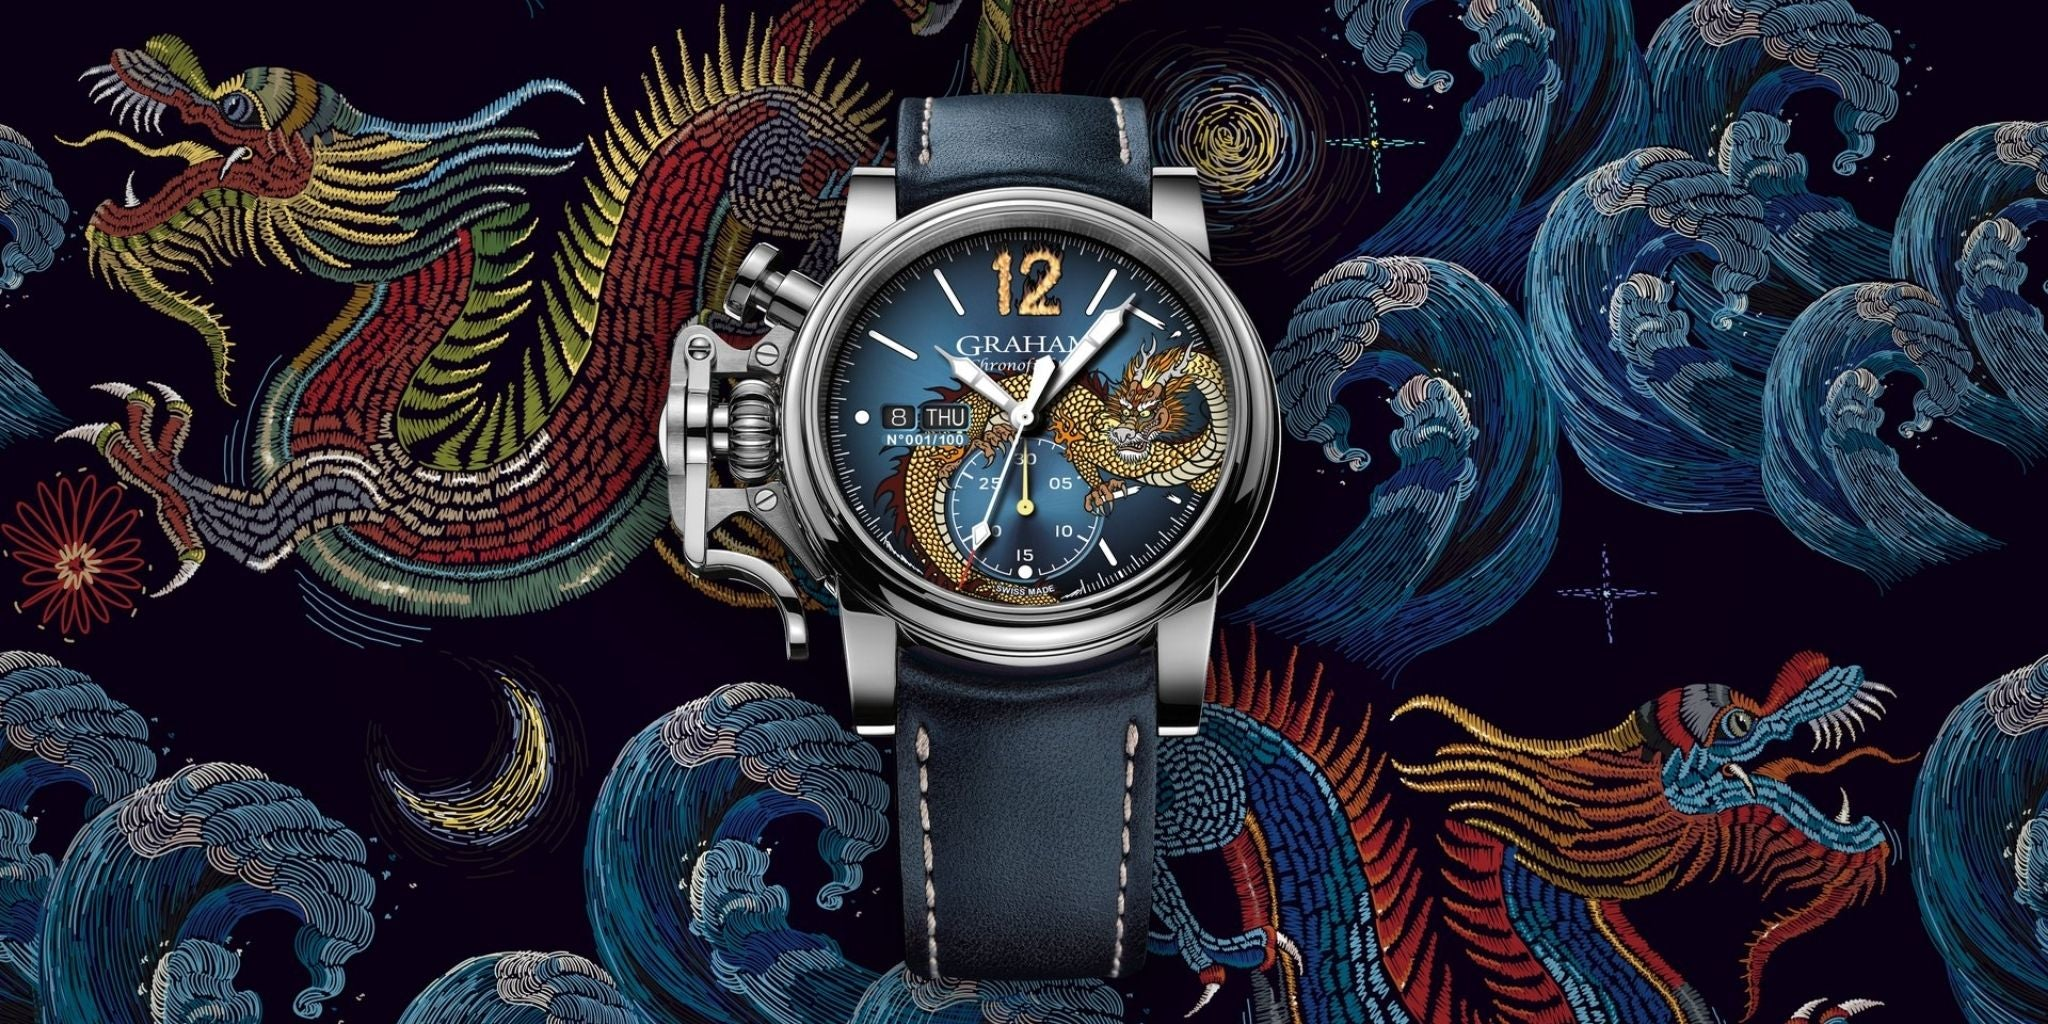 Graham Chronofighter Vintage Blue Dragon Limited Editions